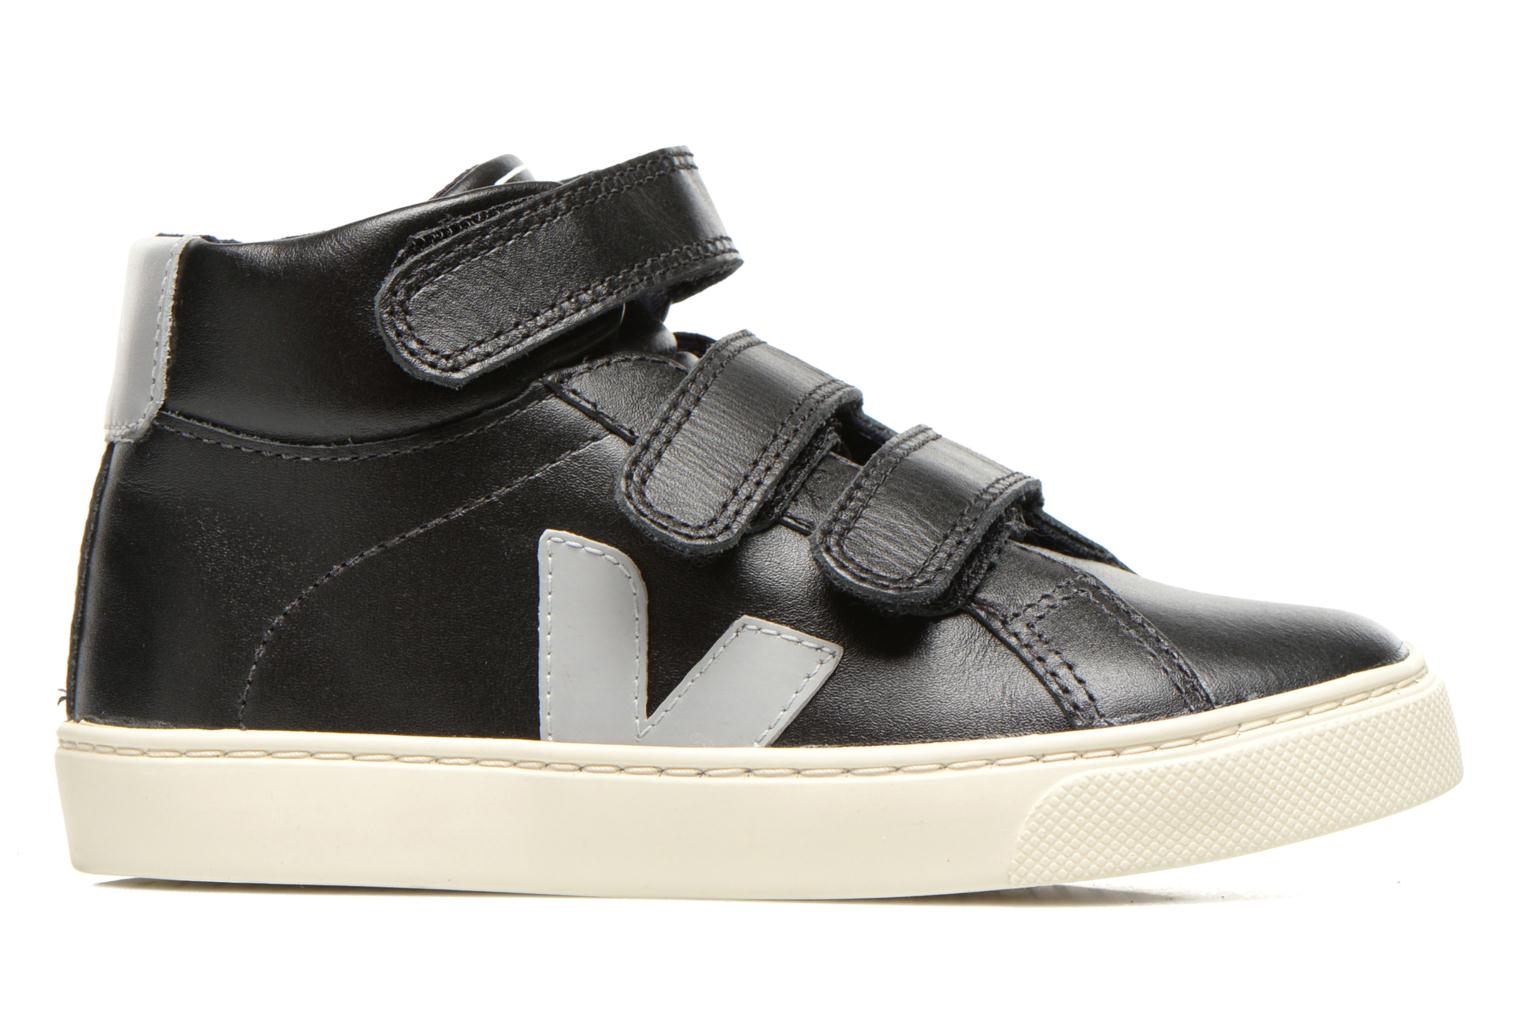 Baskets Veja ESPLAR MID SMALL VELCRO LEATHER Noir vue derrière